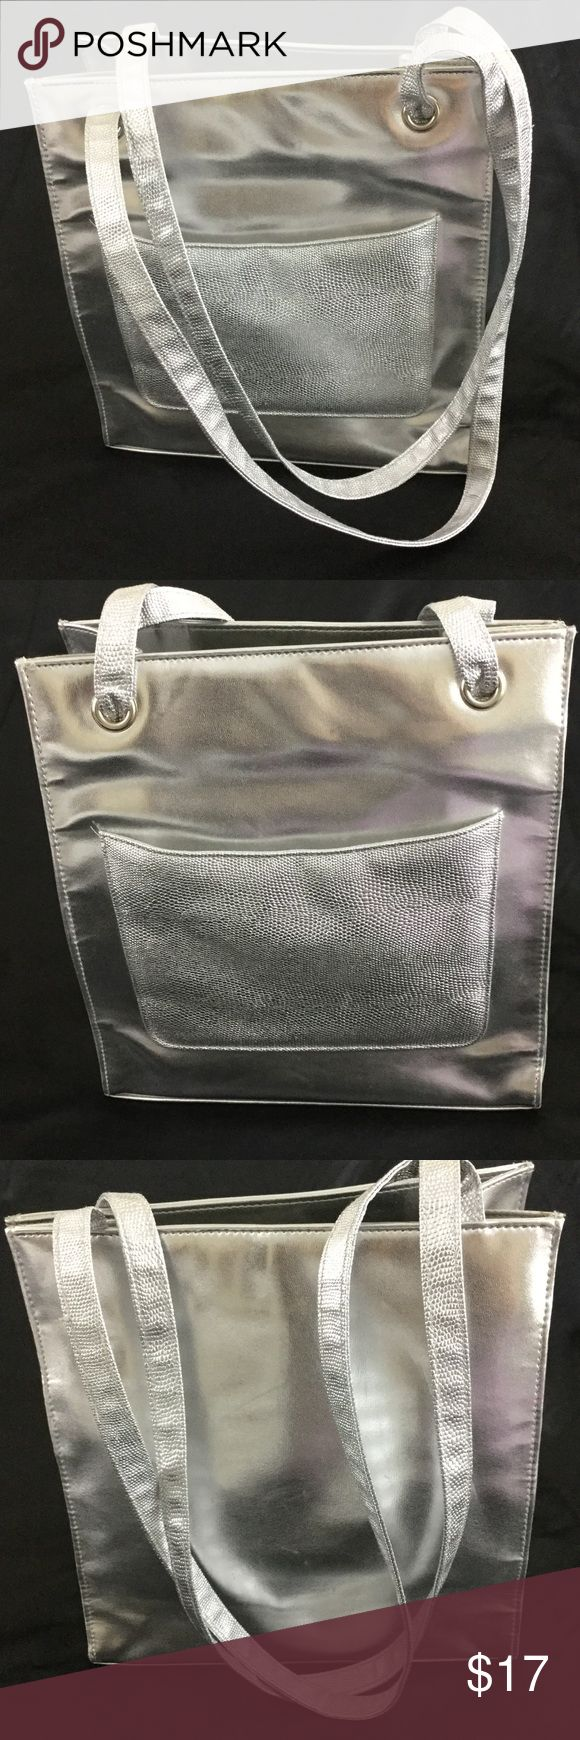 "Silver tote bag Silver tote bag for a futuristic flair, dimensions are 10.75"" wide, 11.25"" tall not counting the 33"" long straps, 4"" deep boutique Bags Totes"